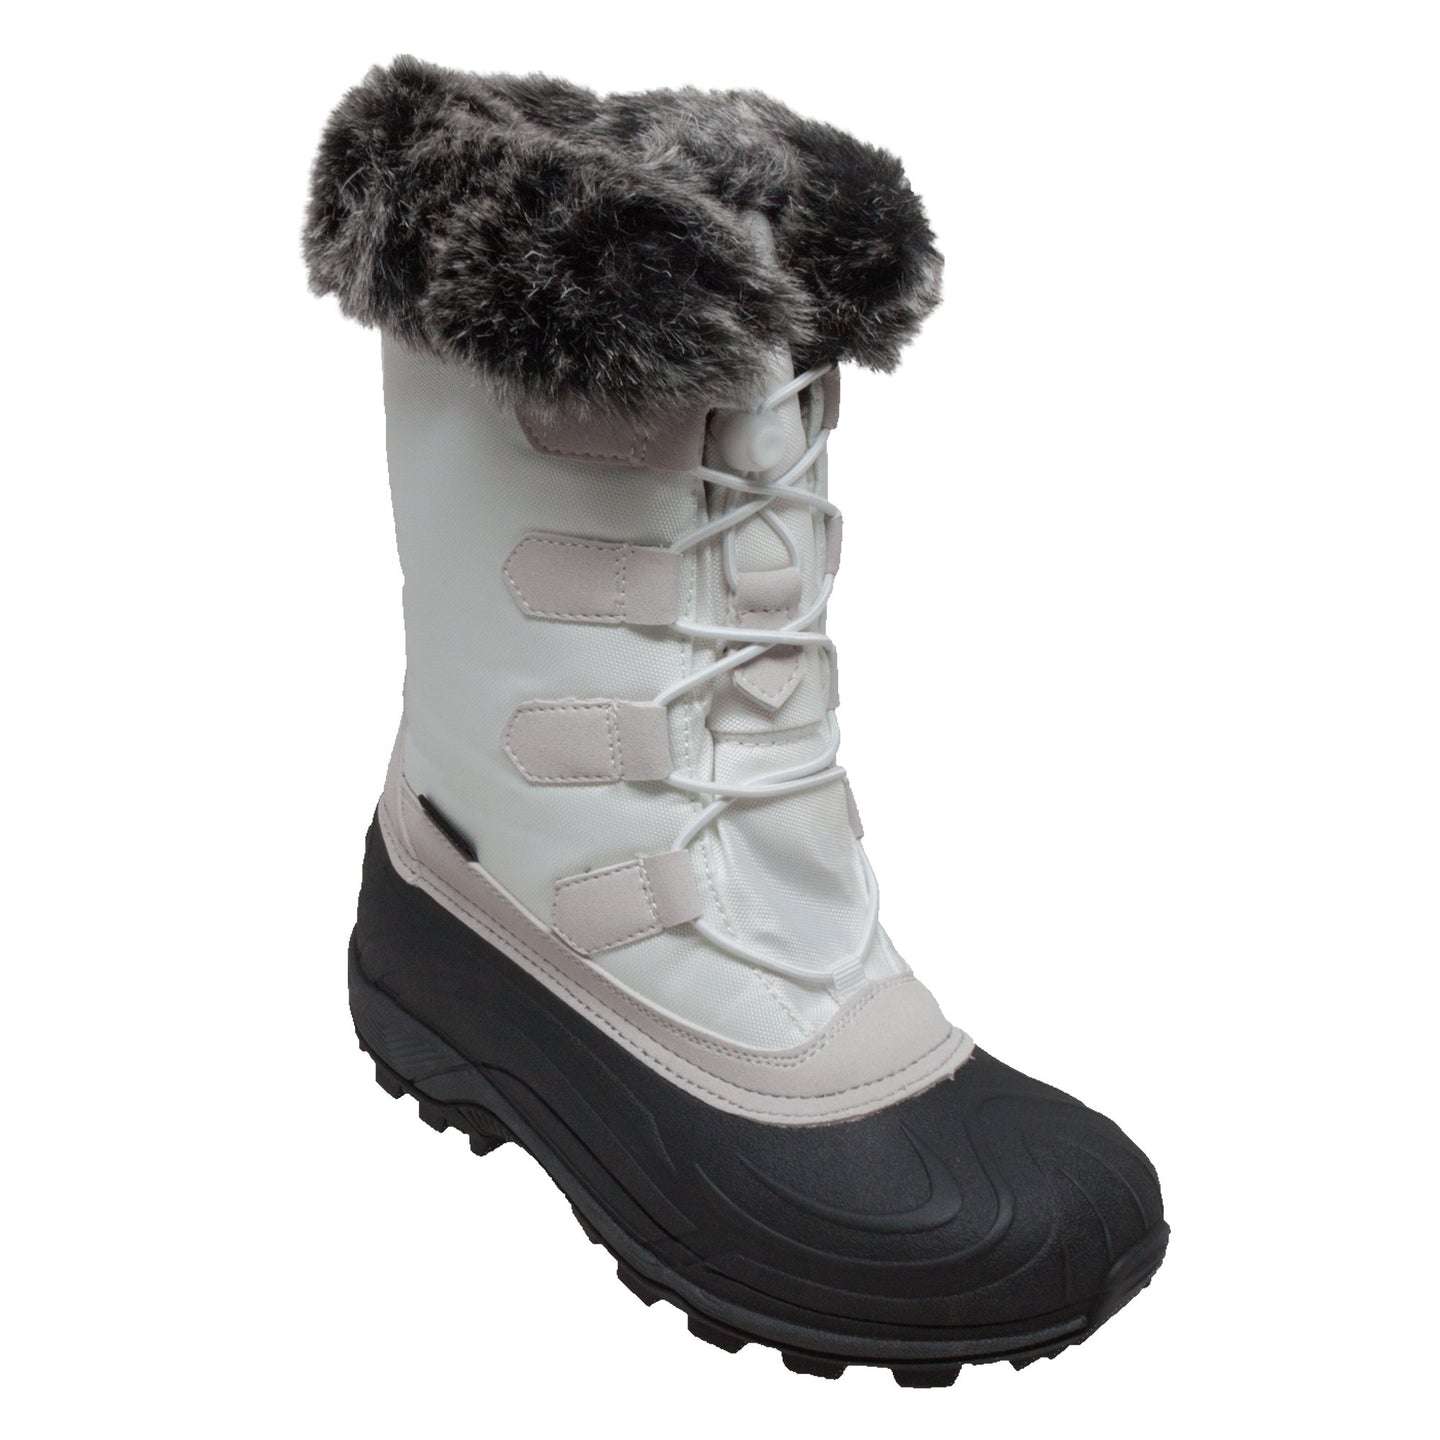 Women's Winter Tecs Nylon Winter Boot White-Women's Boots-Fadcloset-6-WHITE-FADCLOSET